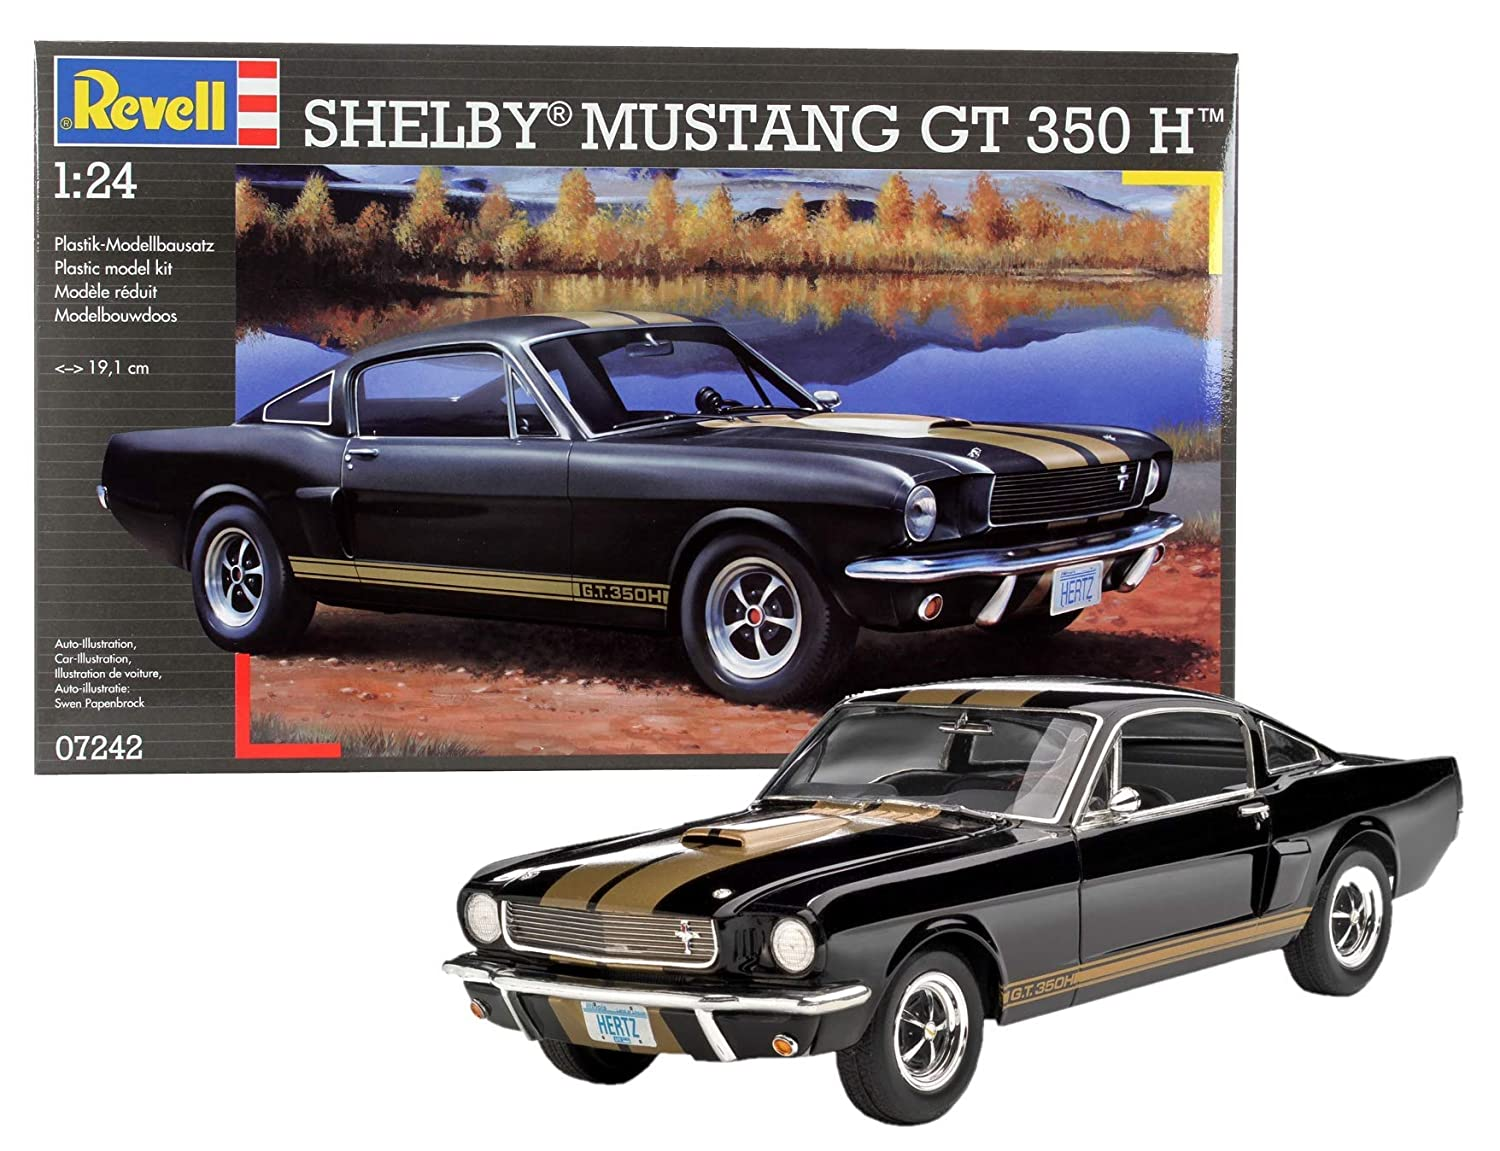 Revell 07242 shelby mustang gt 350 h scala 124